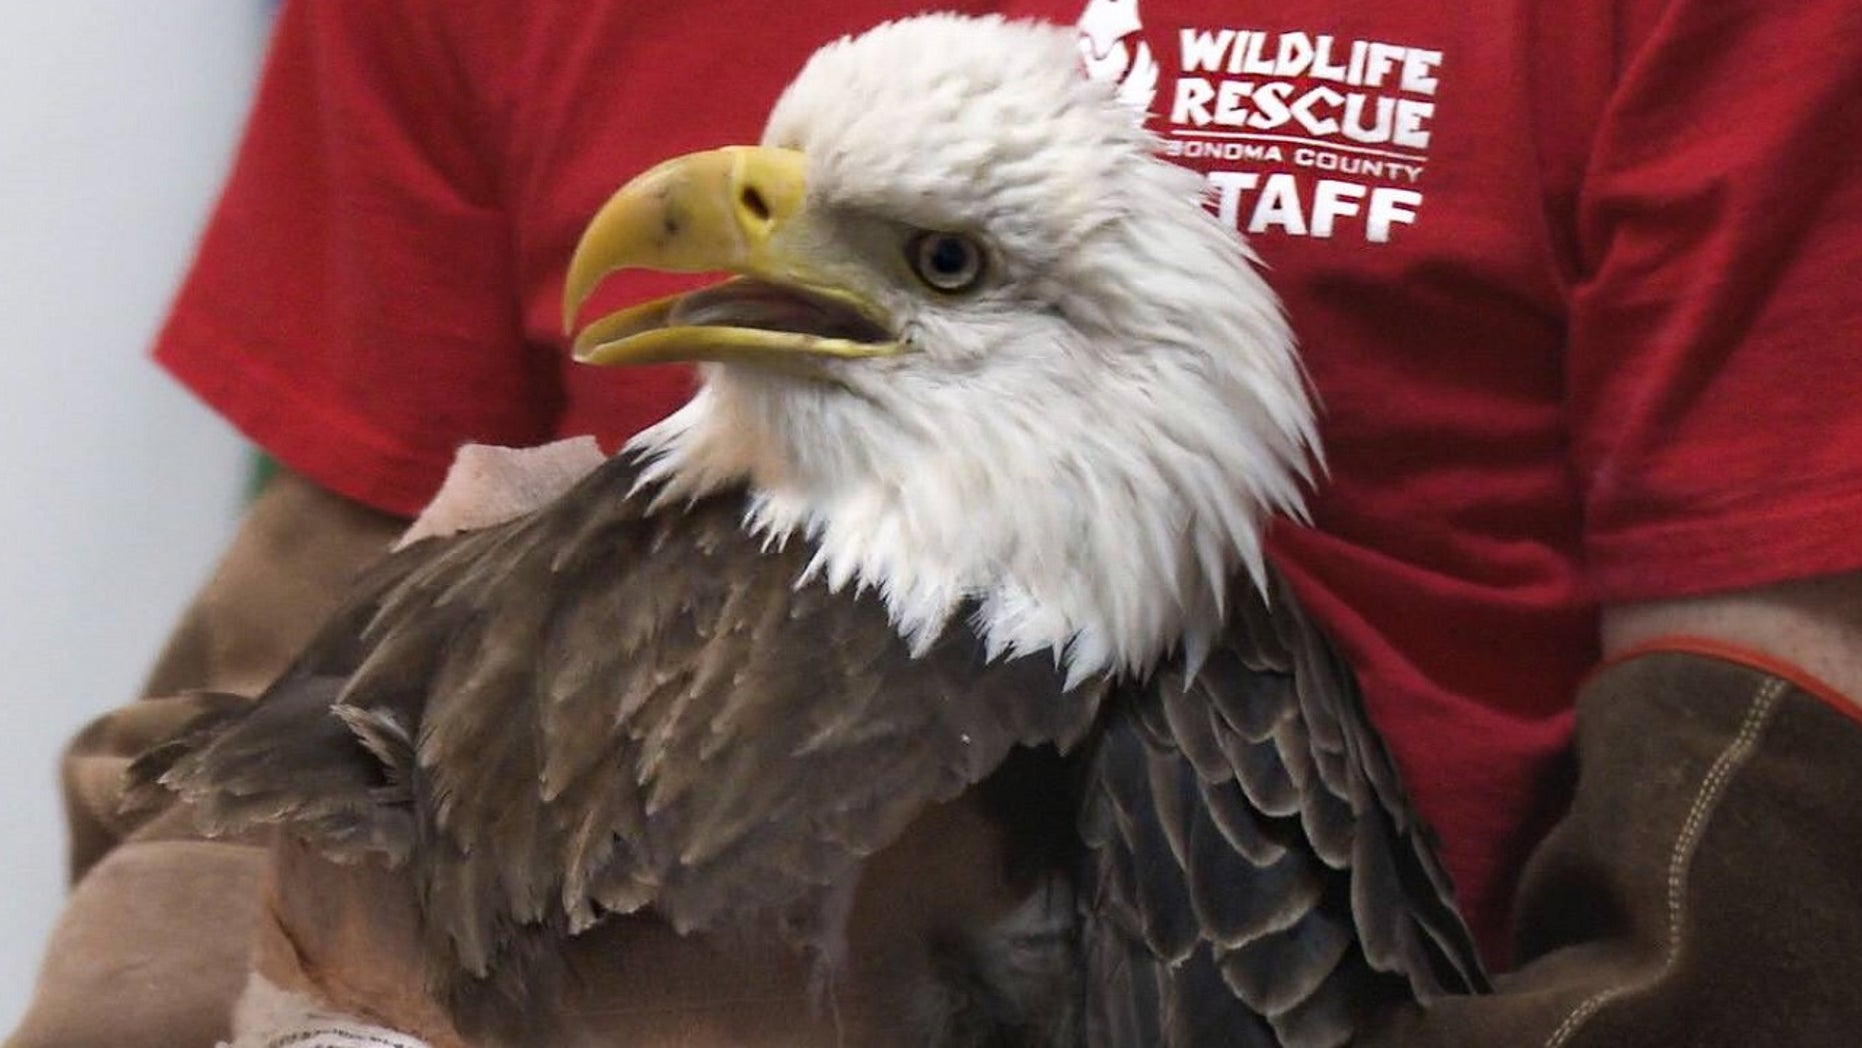 A bald eagle in California has been euthanized Friday after it was illegally shot with a pellet gun and suffered from lead poisoning. (Sonoma County Wildlife Rescue)